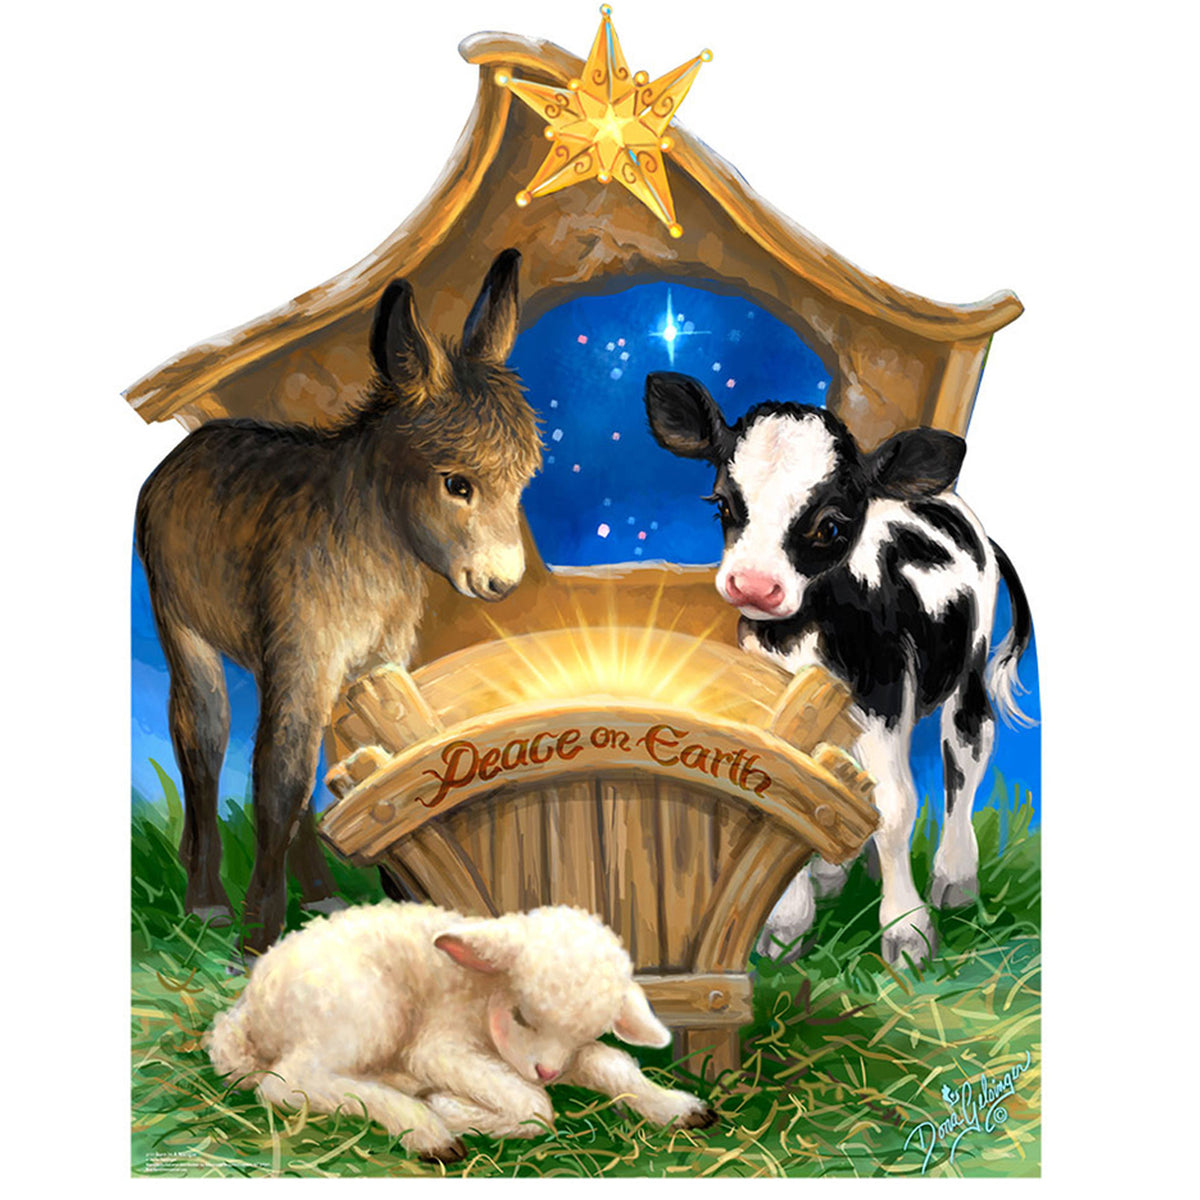 Born in a Manger Standee